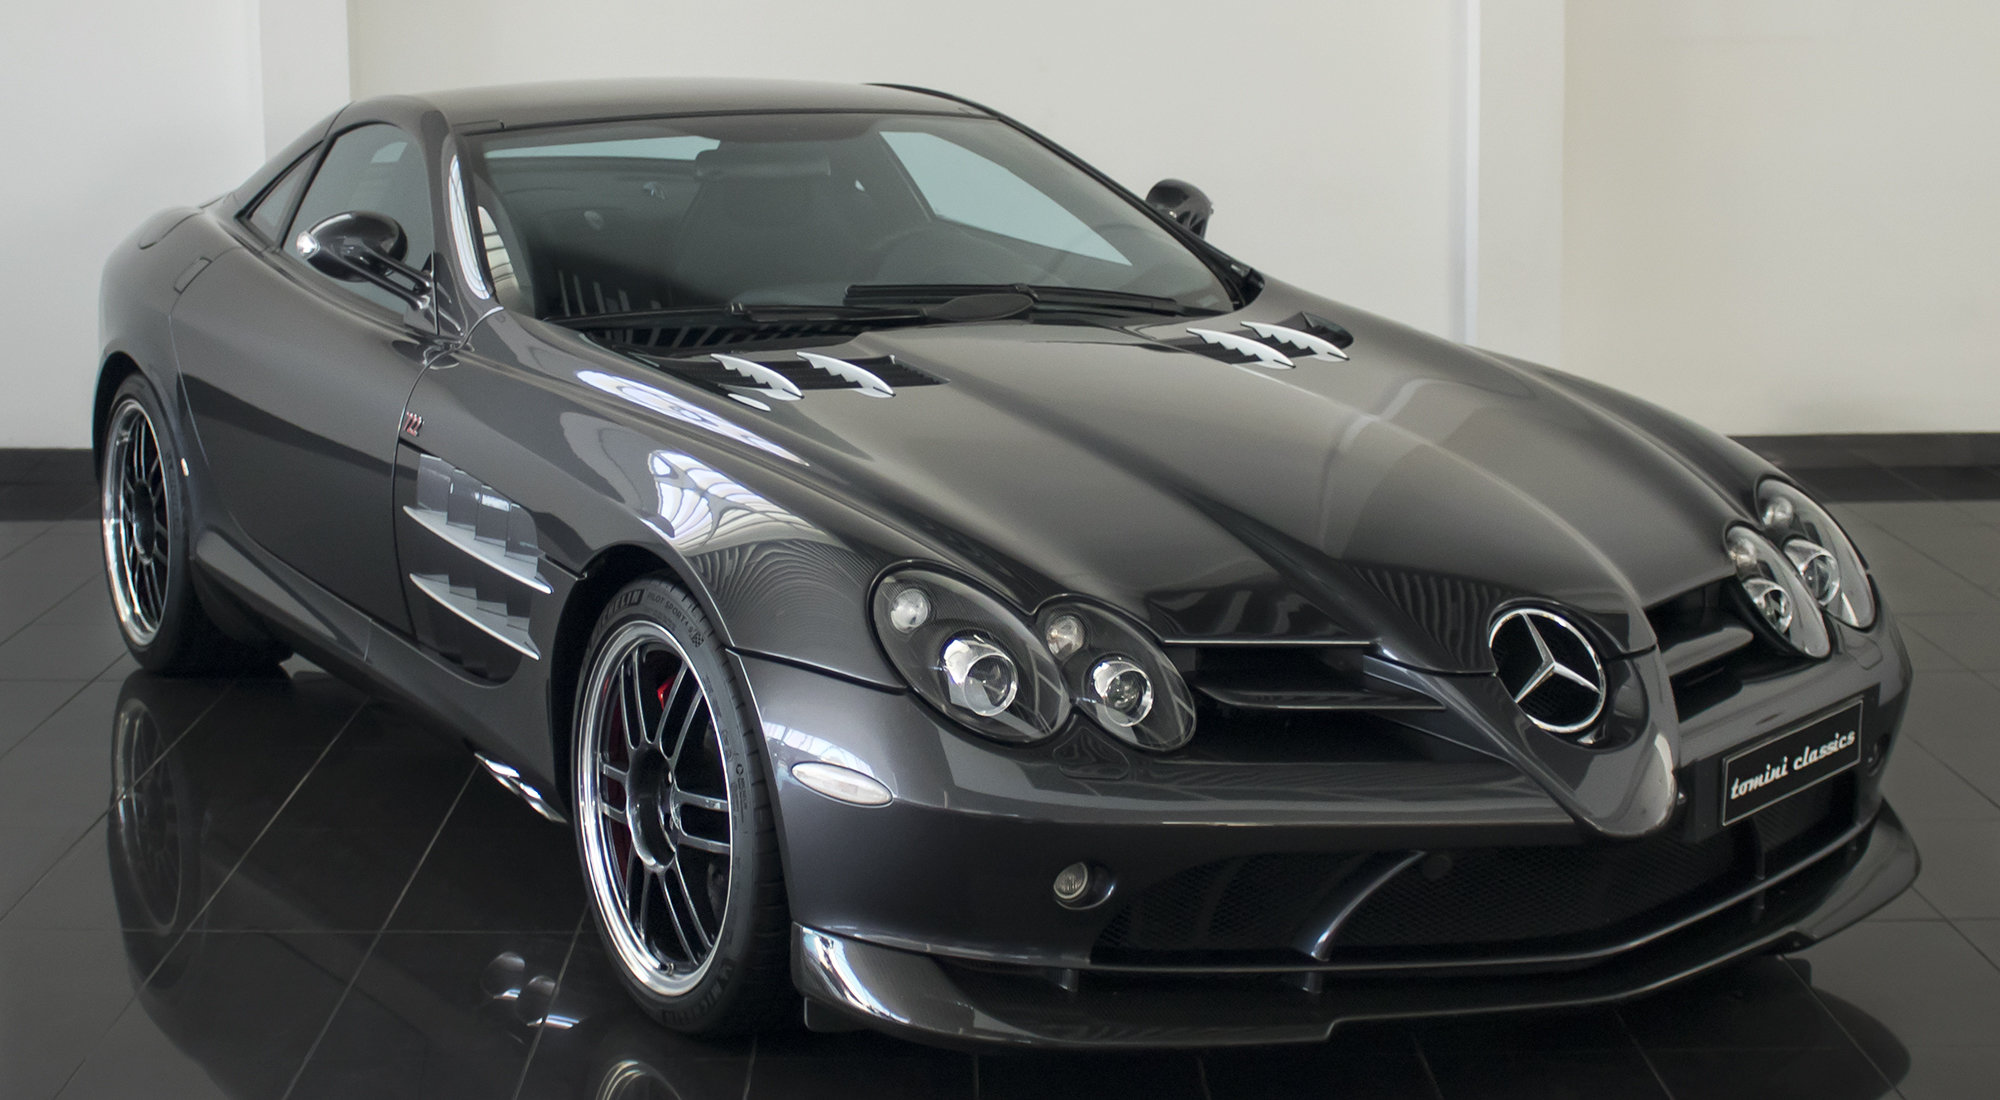 Mercedes-Benz SLR McLaren 722 (2007) For Sale (picture 1 of 6)